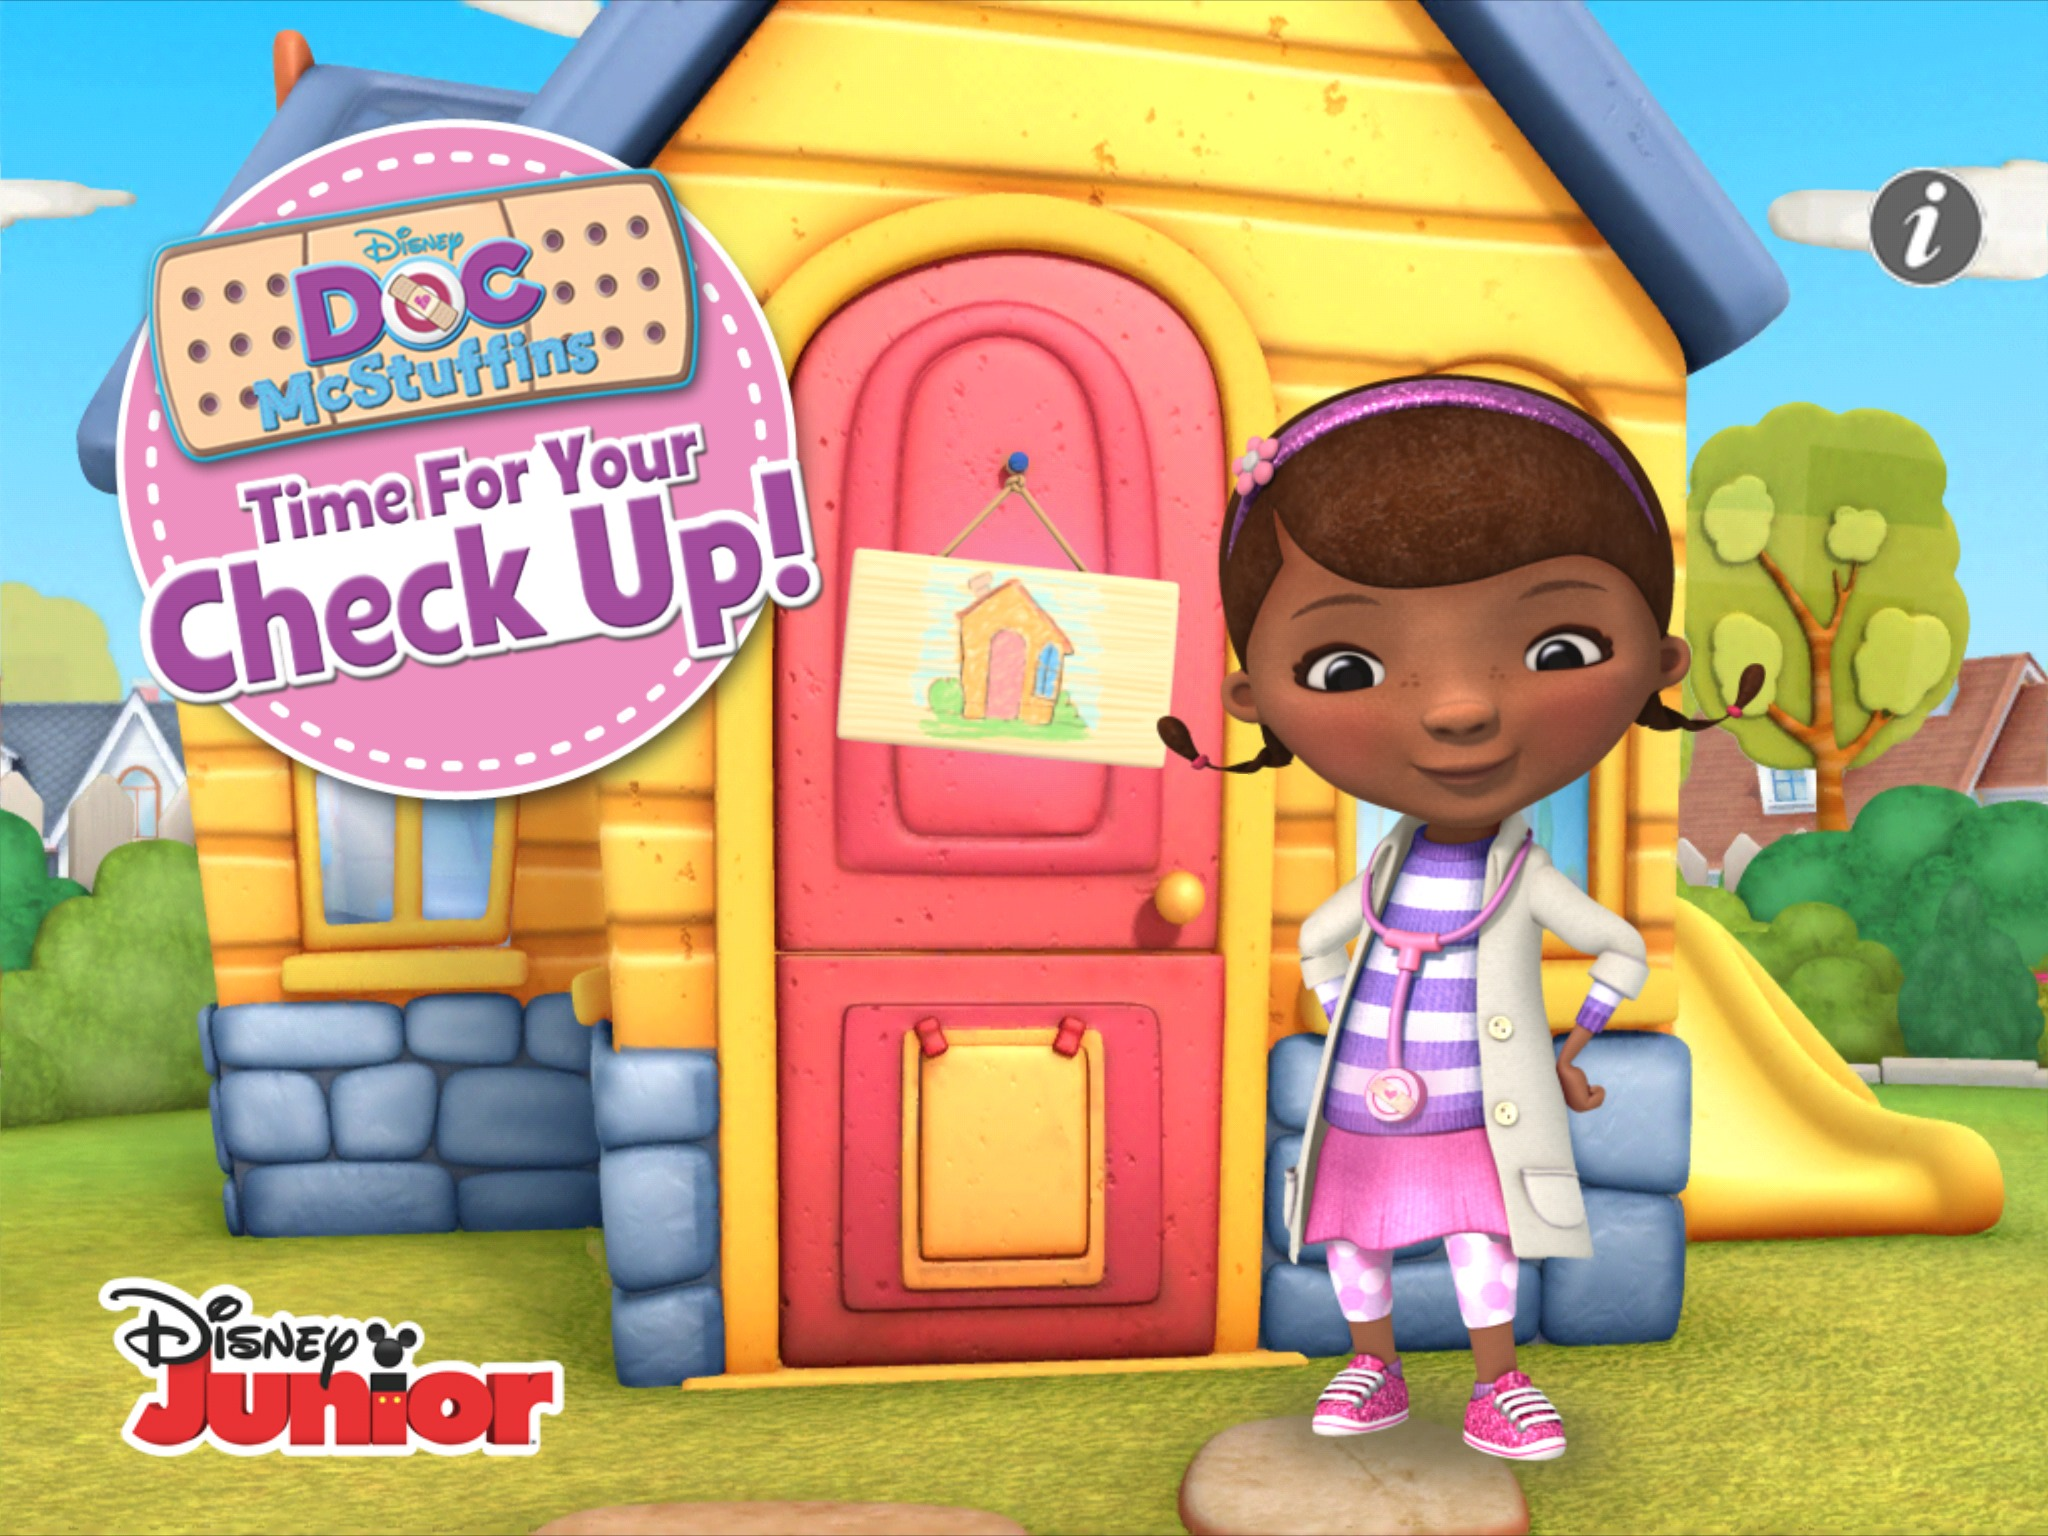 Giveaway: Doc McStuffins App (iTunes Gift Card) and Disney Junior iPad